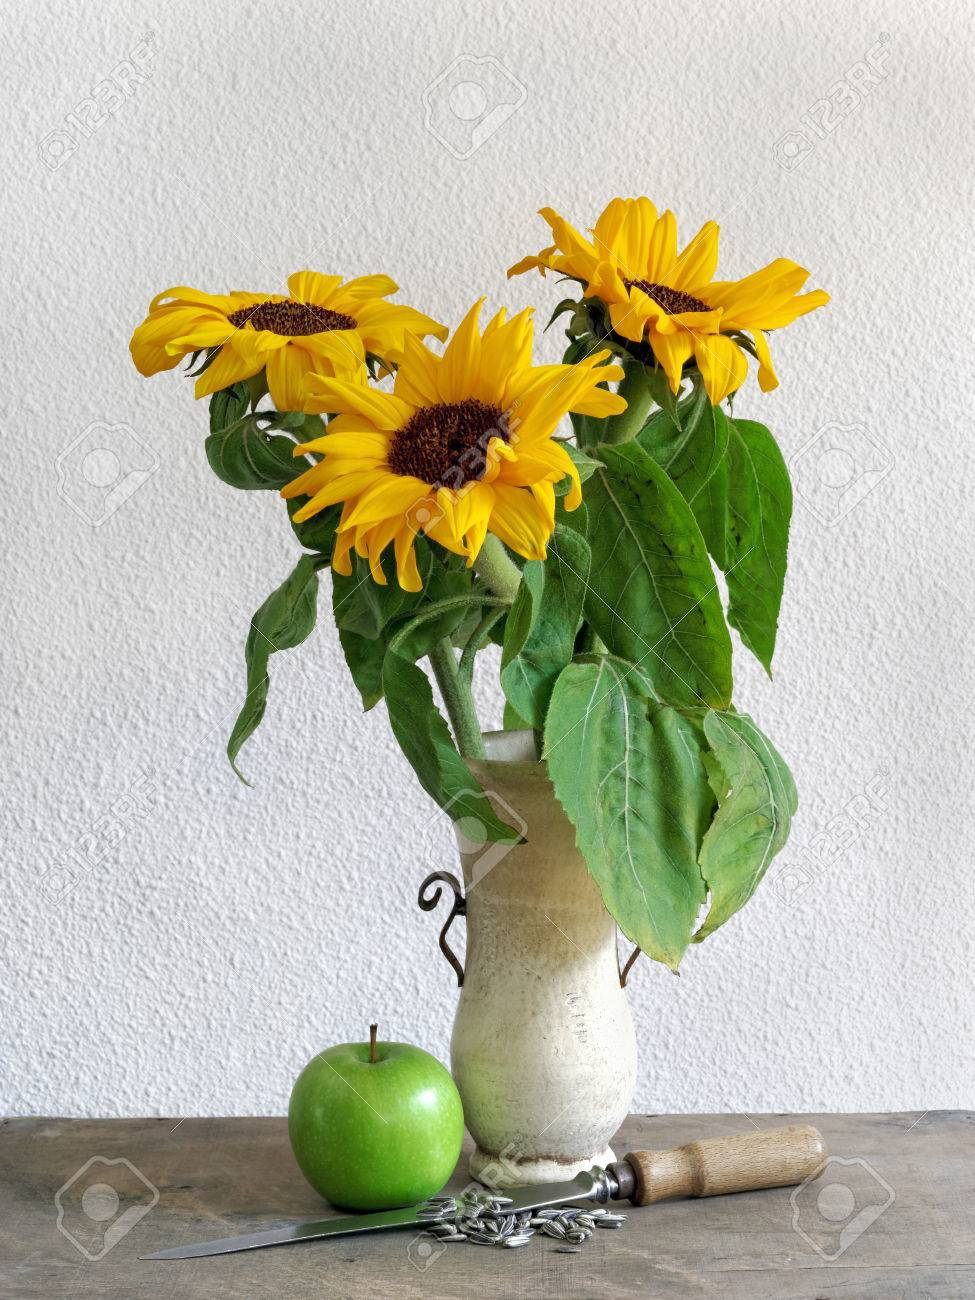 Decorative Still Life Of Sunflowers Stock Photo